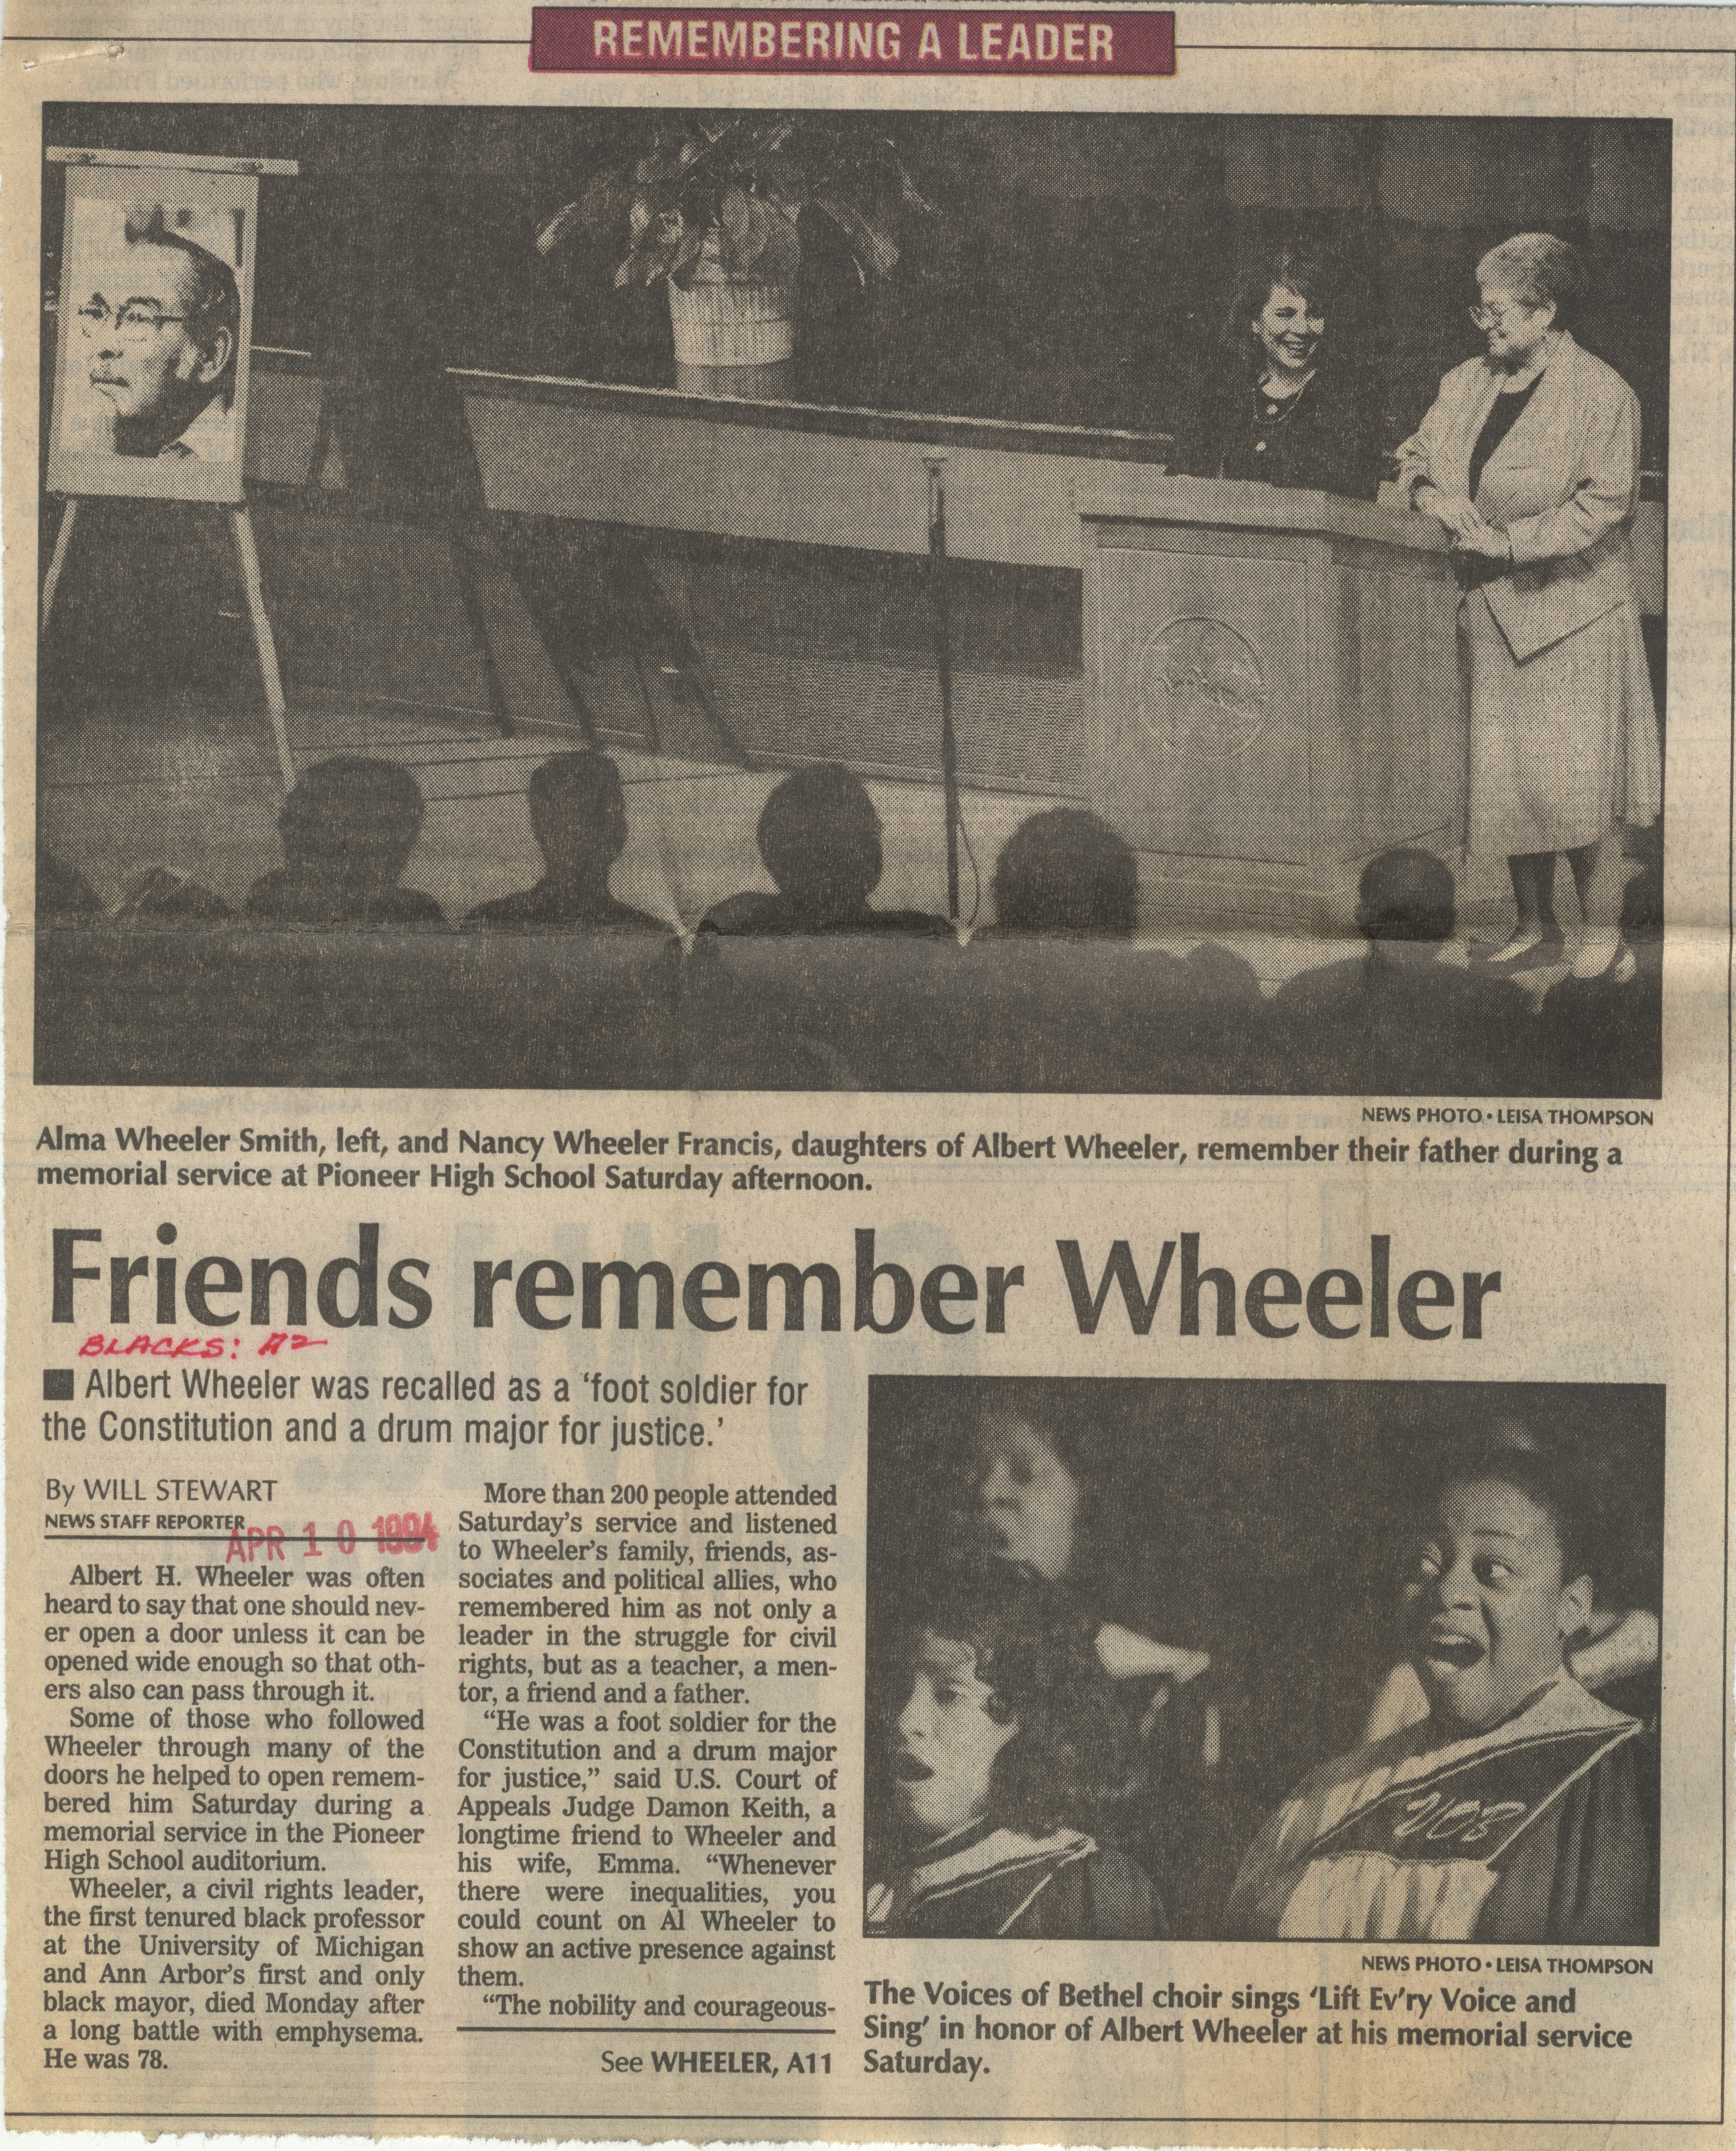 Friends Remember Wheeler image